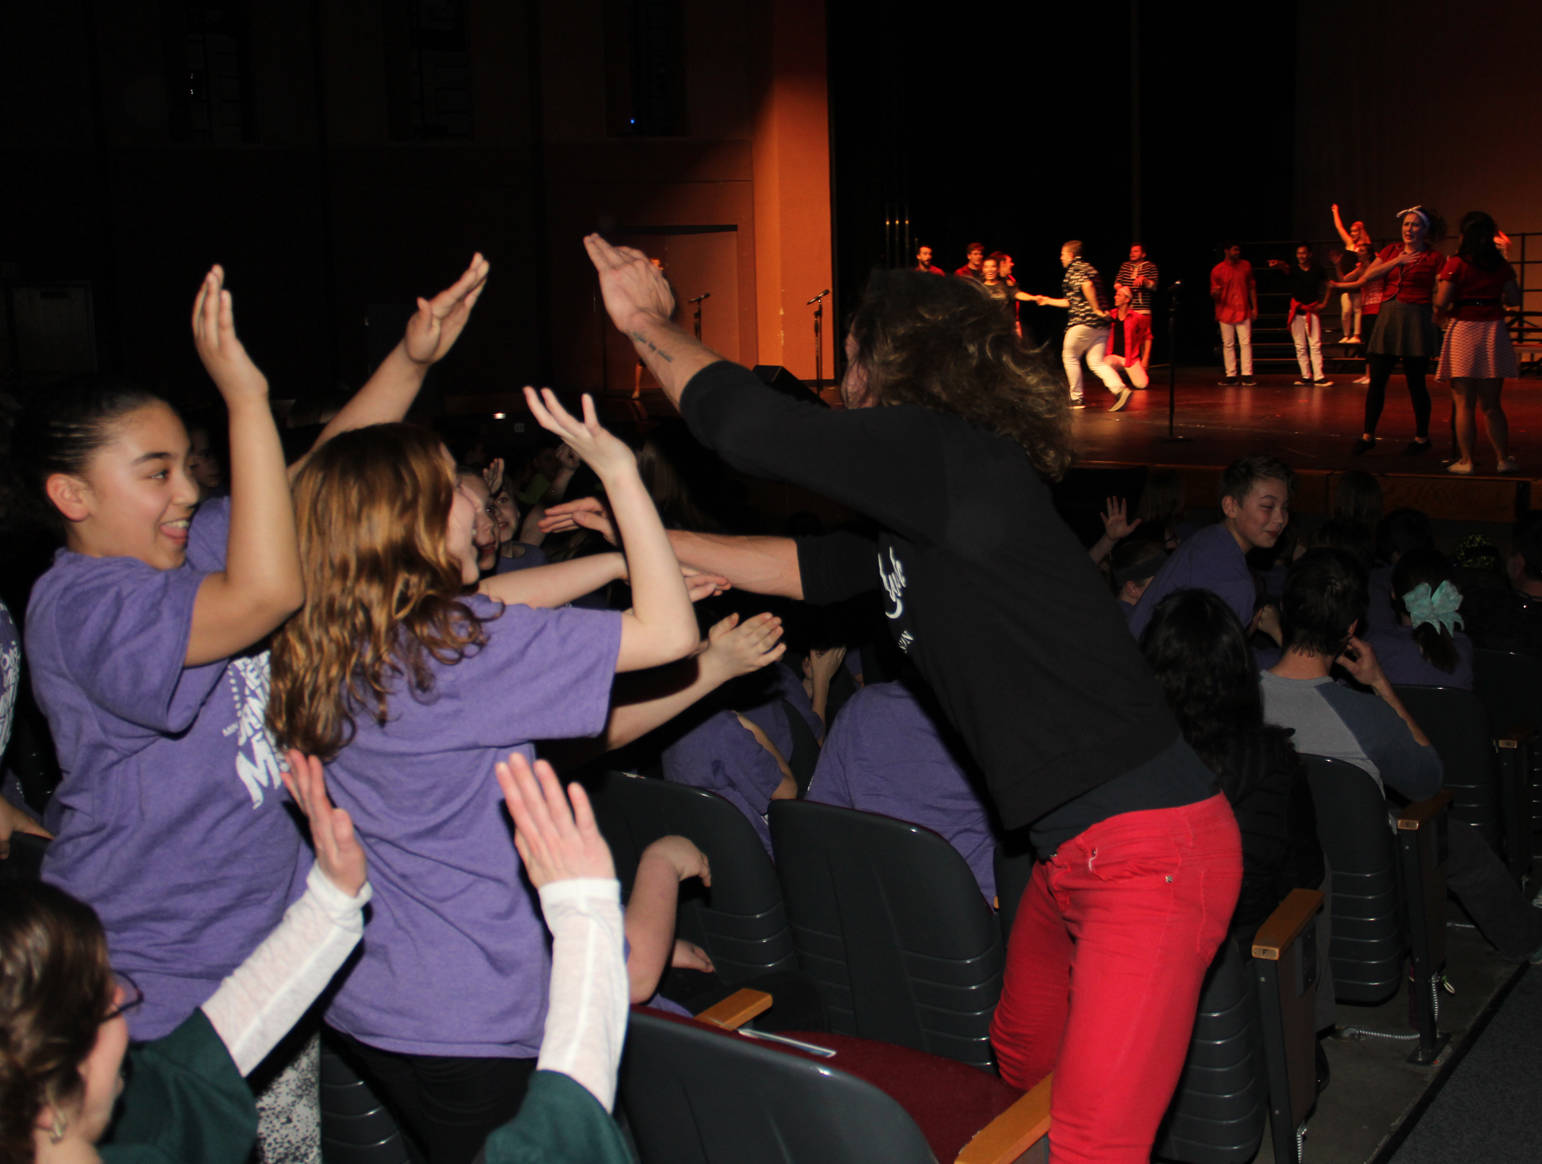 Sharing the energy with their audience Young Americans amaze and inspire Kenai Peninsula Borough School District students.